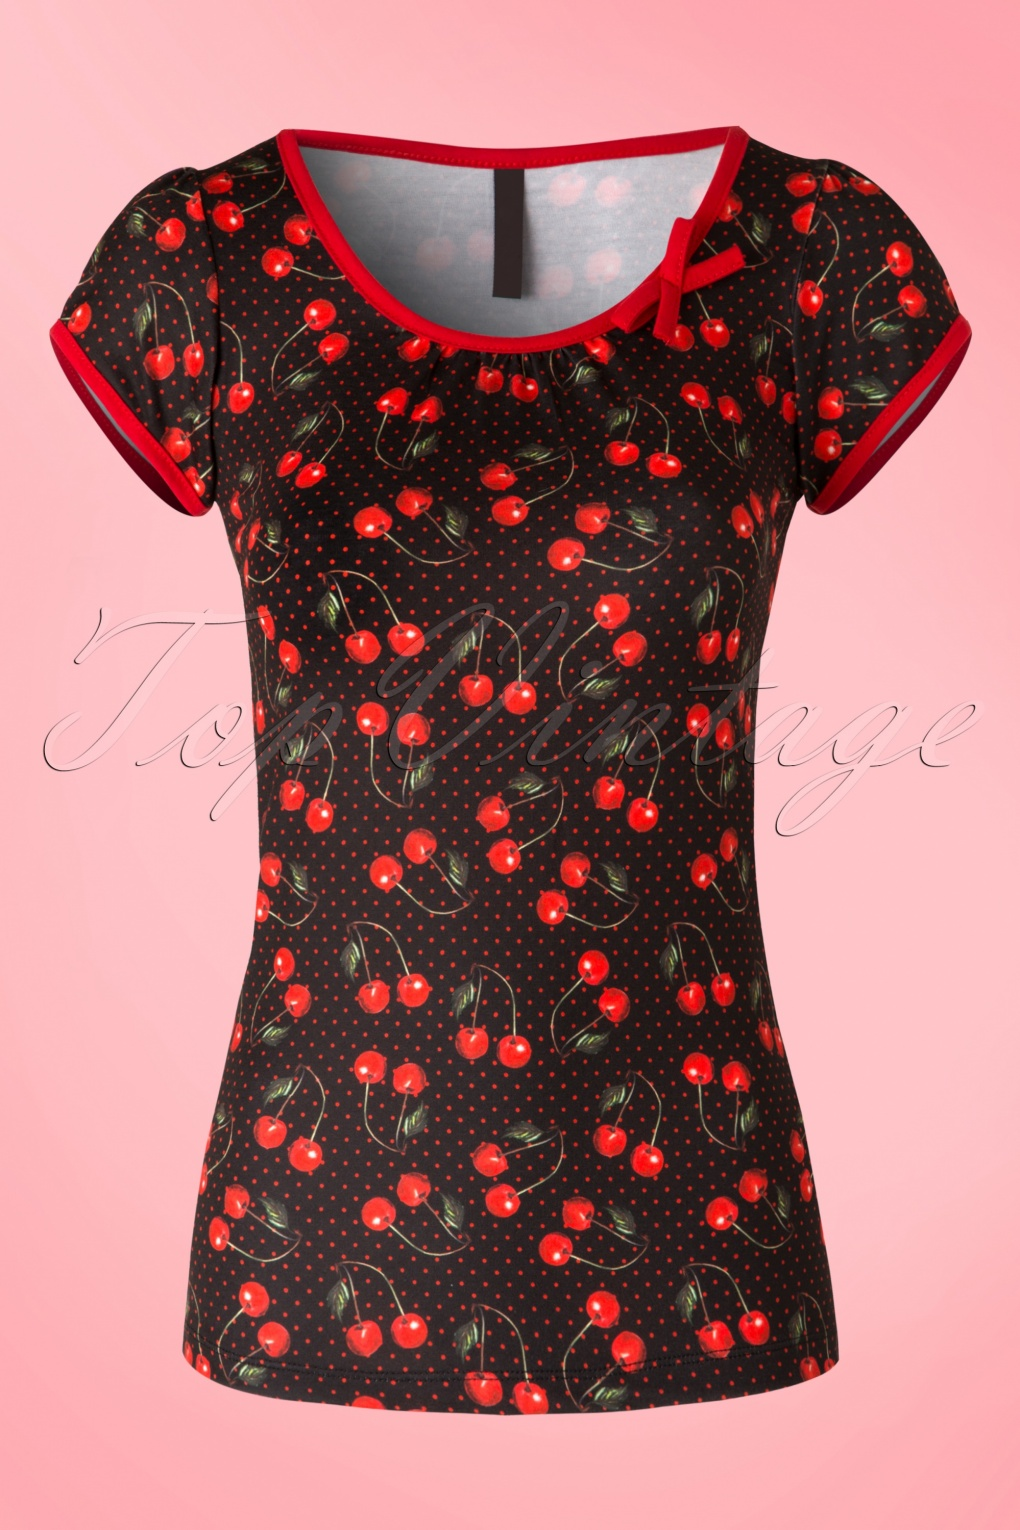 1950s Rockabilly & Pinup Tops, Shirts, Blouses 50s Leona Cherry Art Top in Black and Red £27.58 AT vintagedancer.com